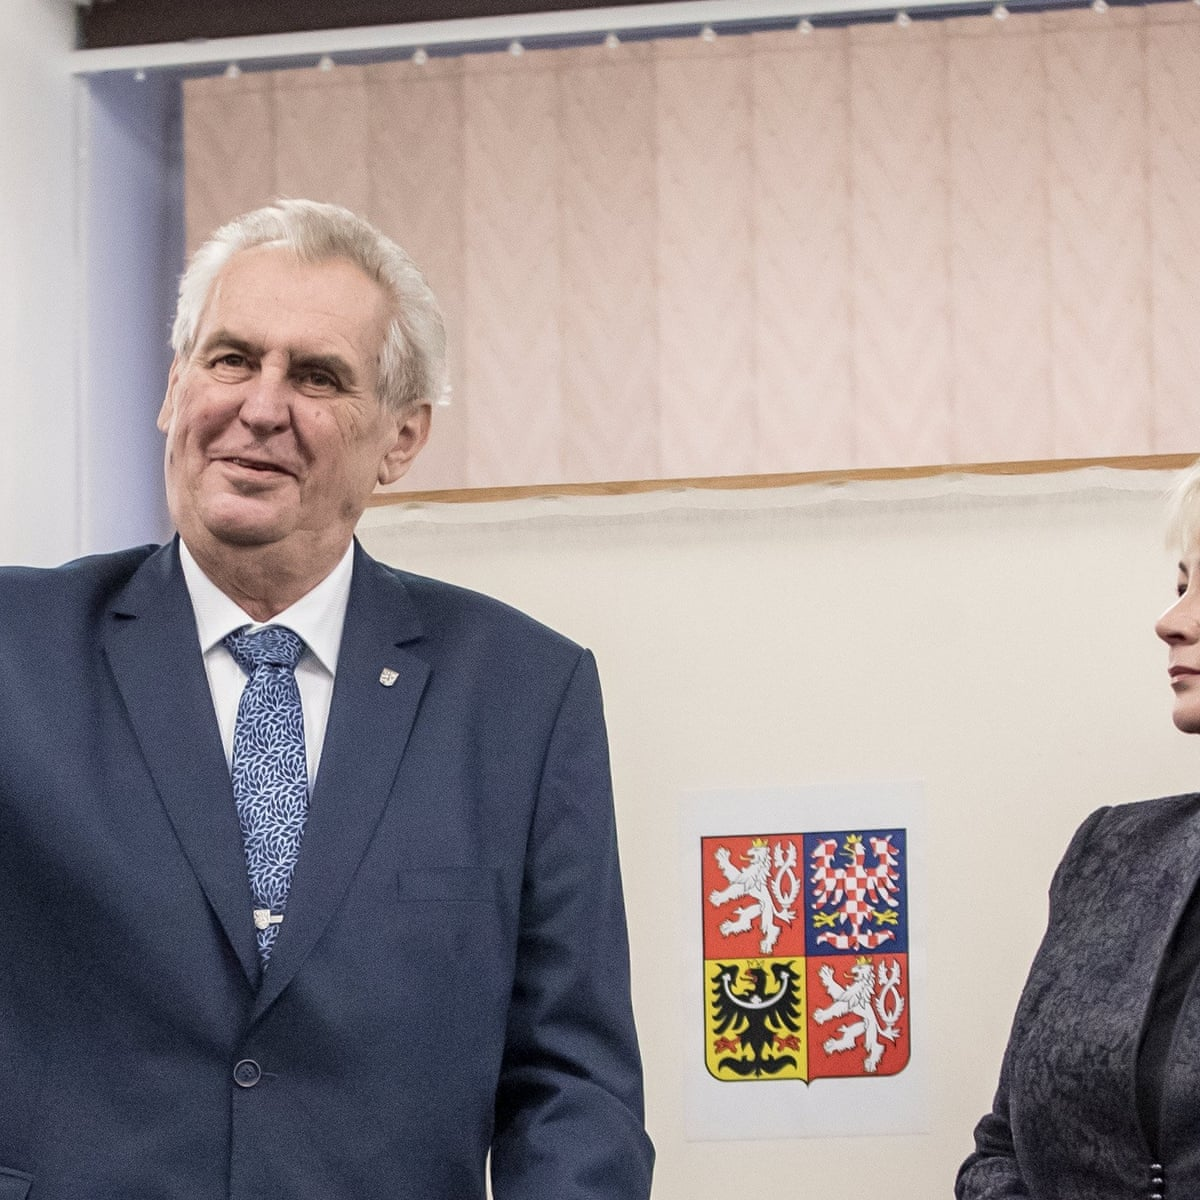 2018 President of the Senate of the Czech Republic election